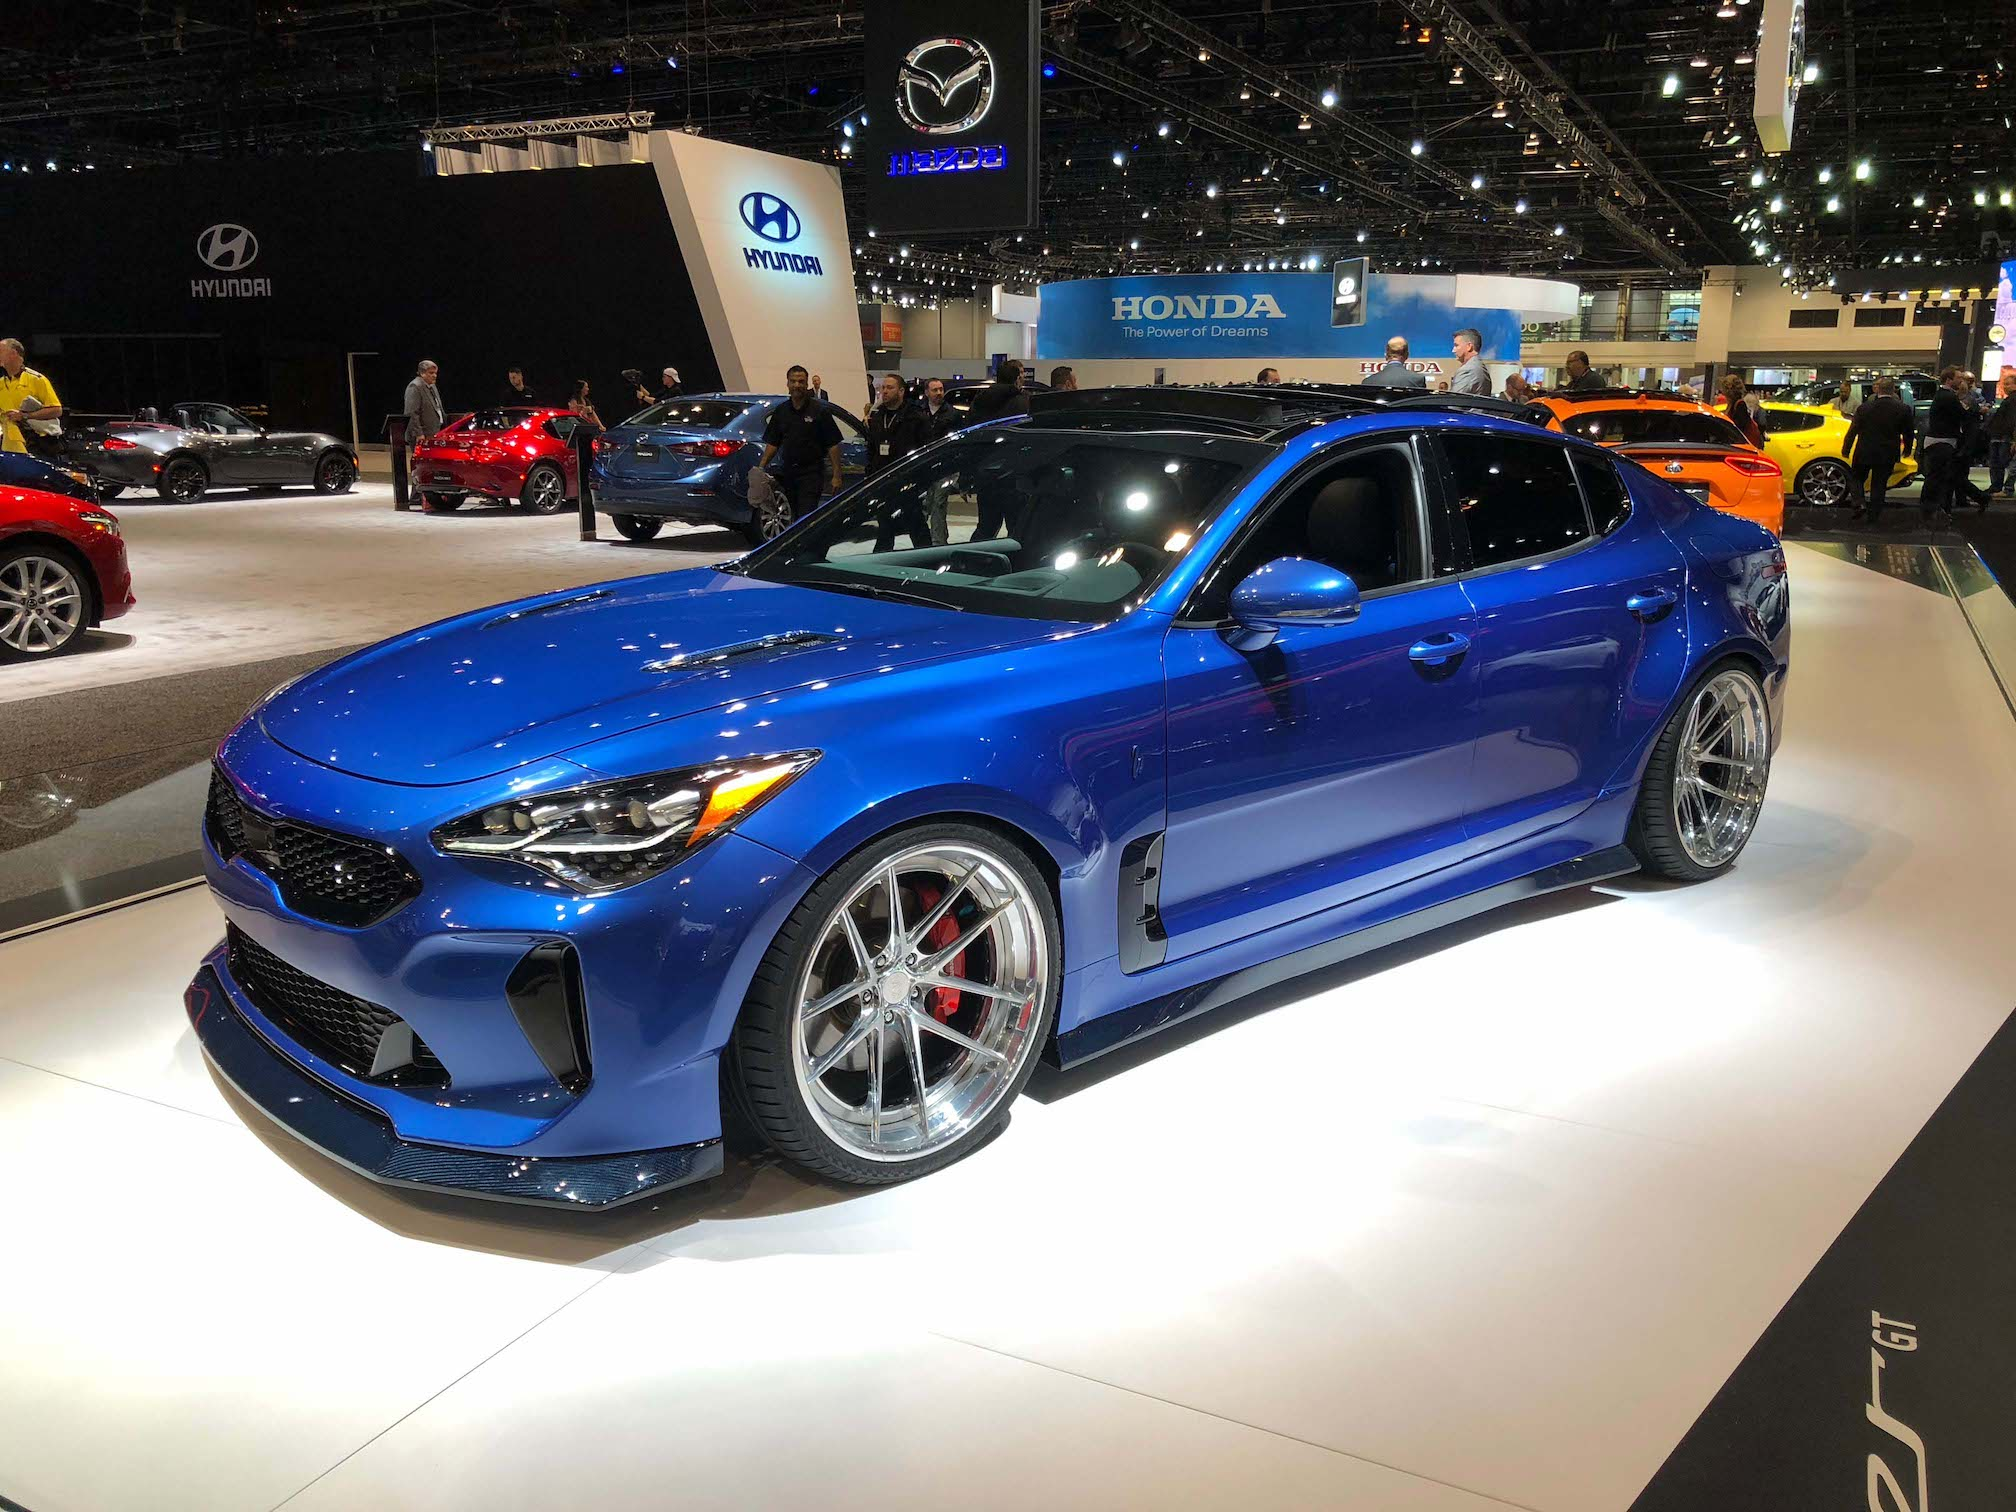 2018 kia stinger gt by west coast customs 2018 chicago auto show automotive rhythms. Black Bedroom Furniture Sets. Home Design Ideas